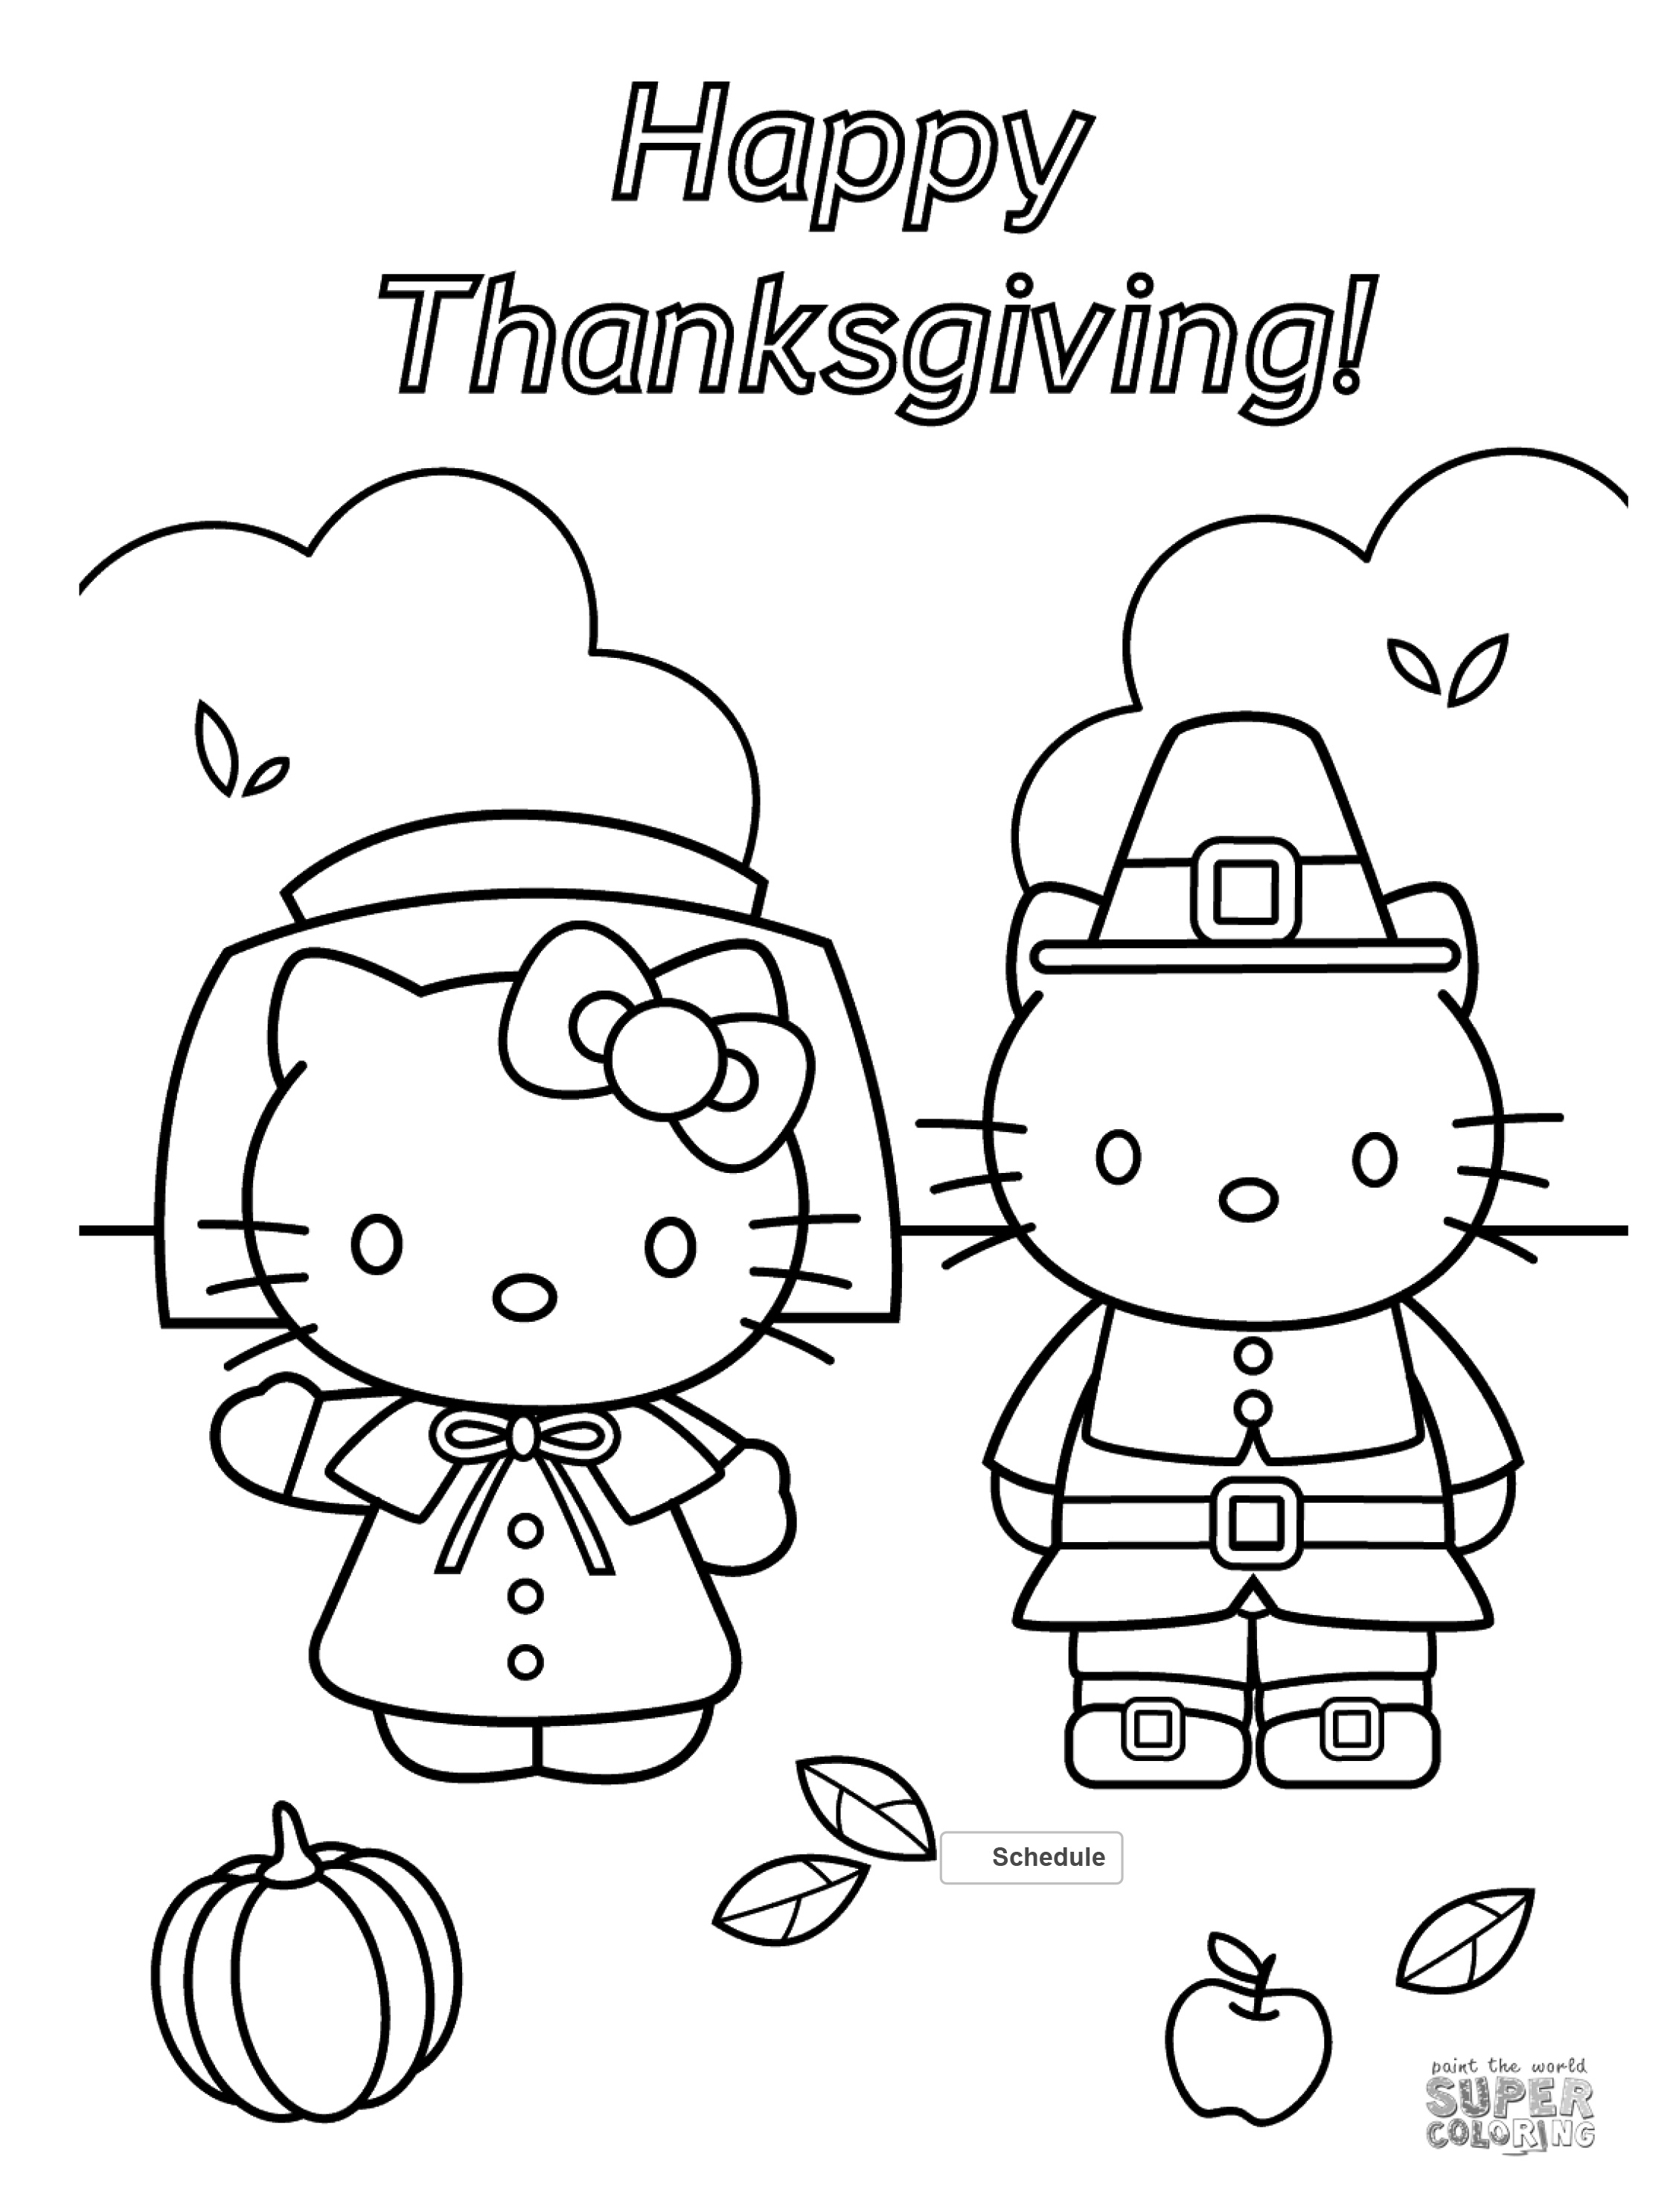 Super coloring shared this hello kitty thanksgiving coloring page thats sure to be a big hit with all the kitty fans